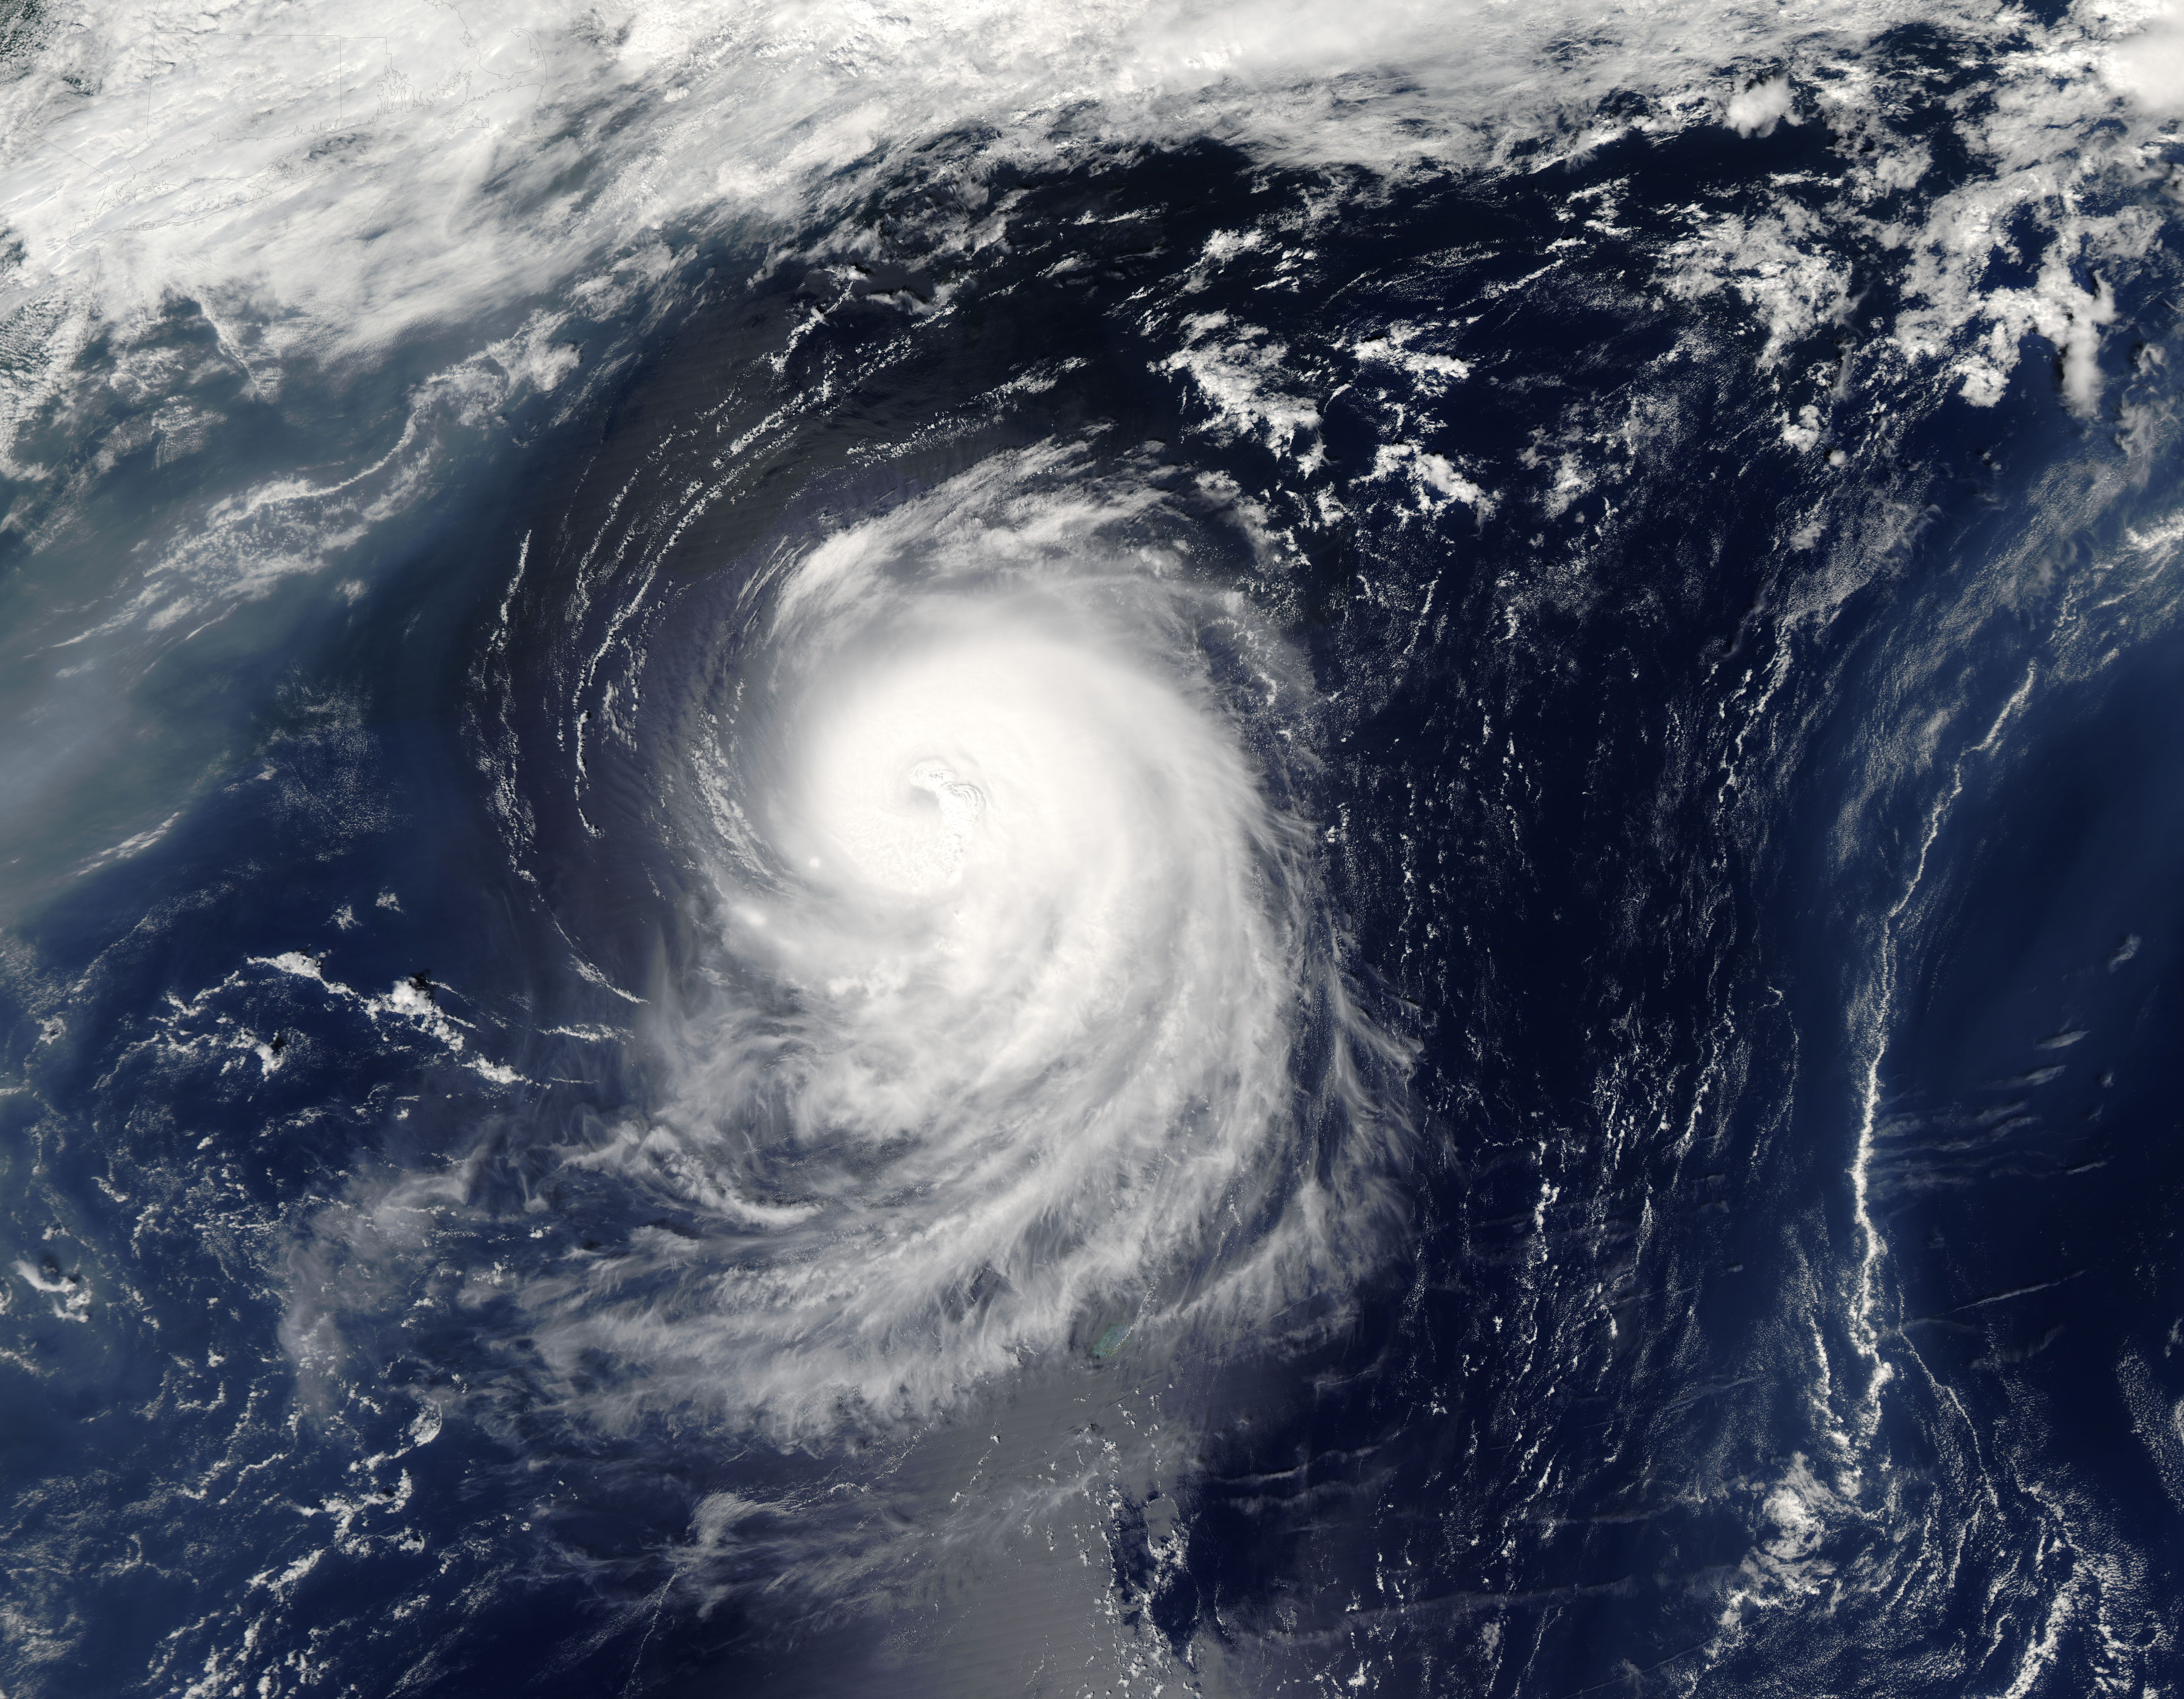 Hurricane Irene Google Images High Def Wallpapers Hurricane Images Hubble Telescope Pictures